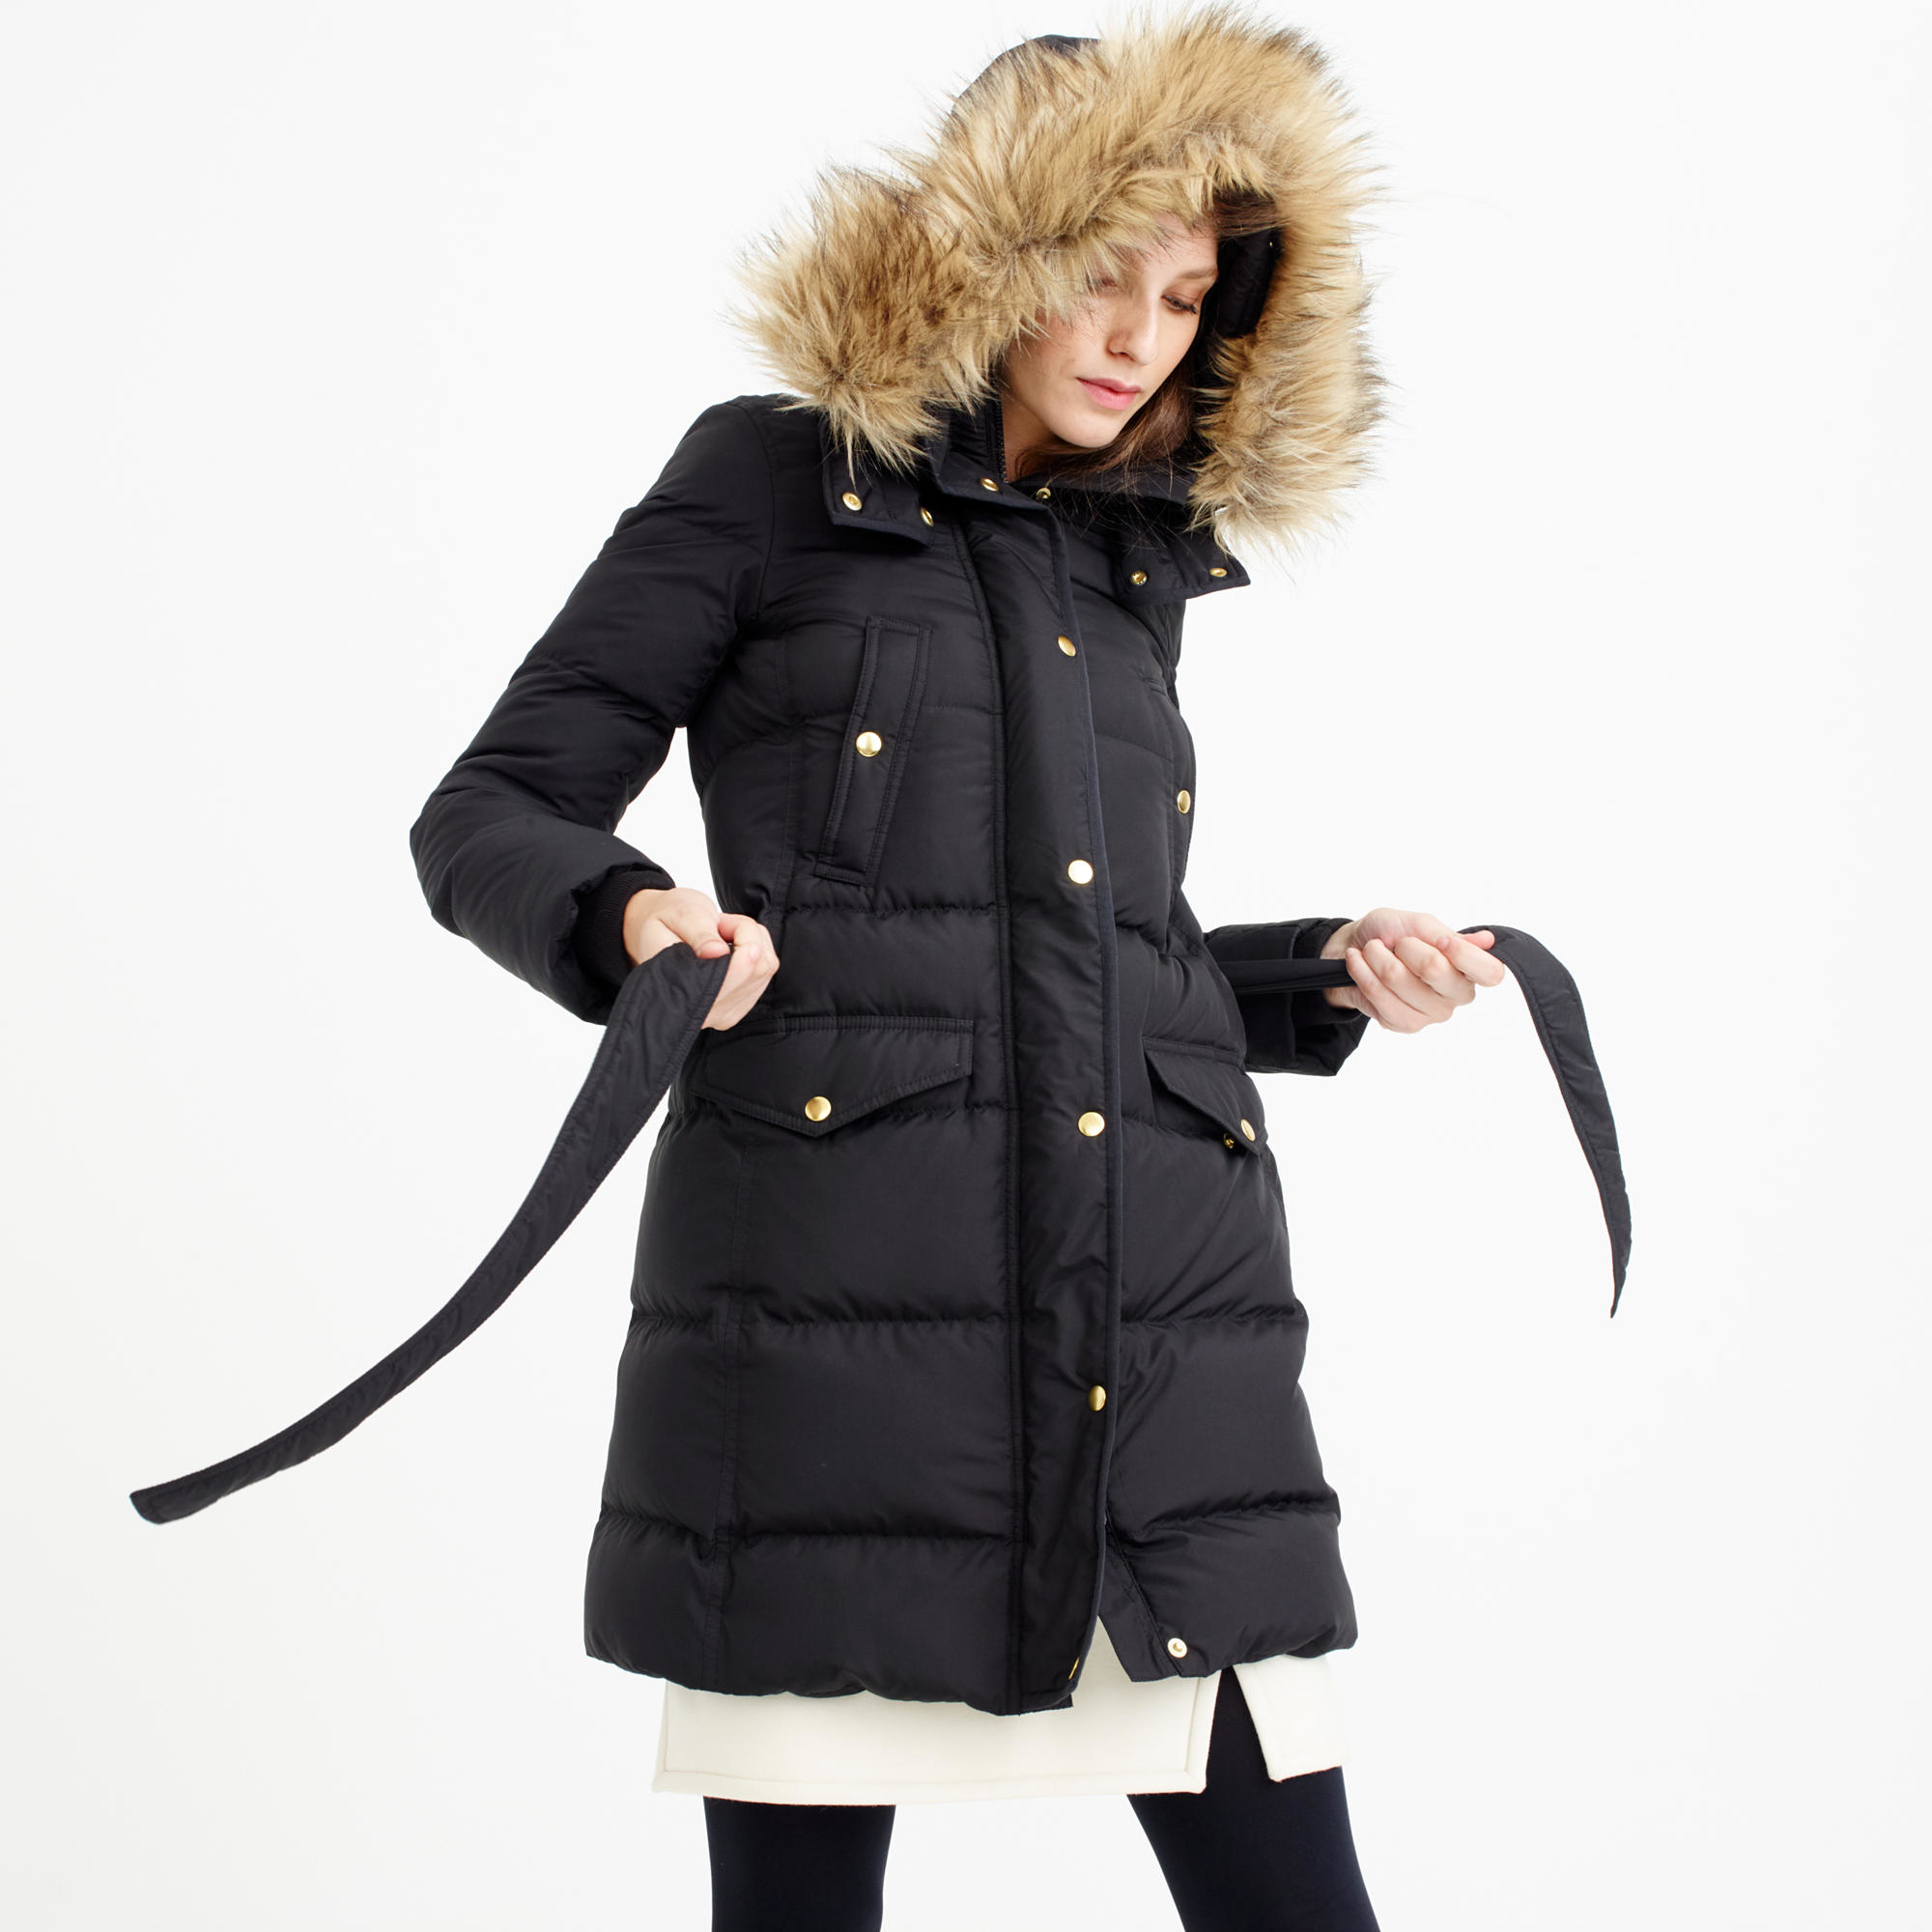 J.crew Petite Wintress Puffer Coat With Faux-fur Hood in Black | Lyst